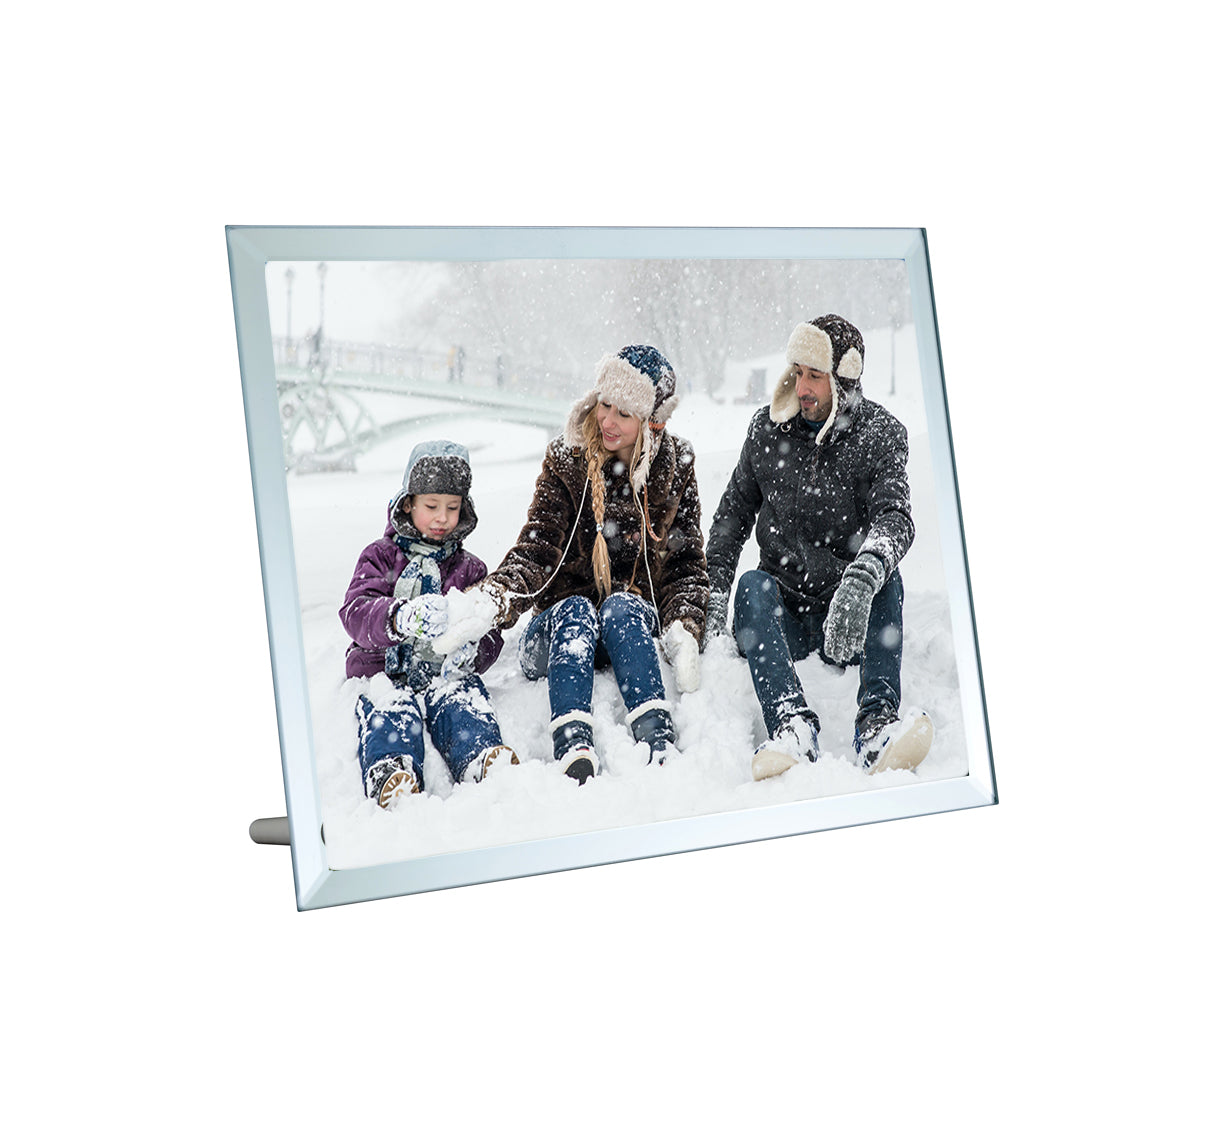 Glass photo plaque 7x9